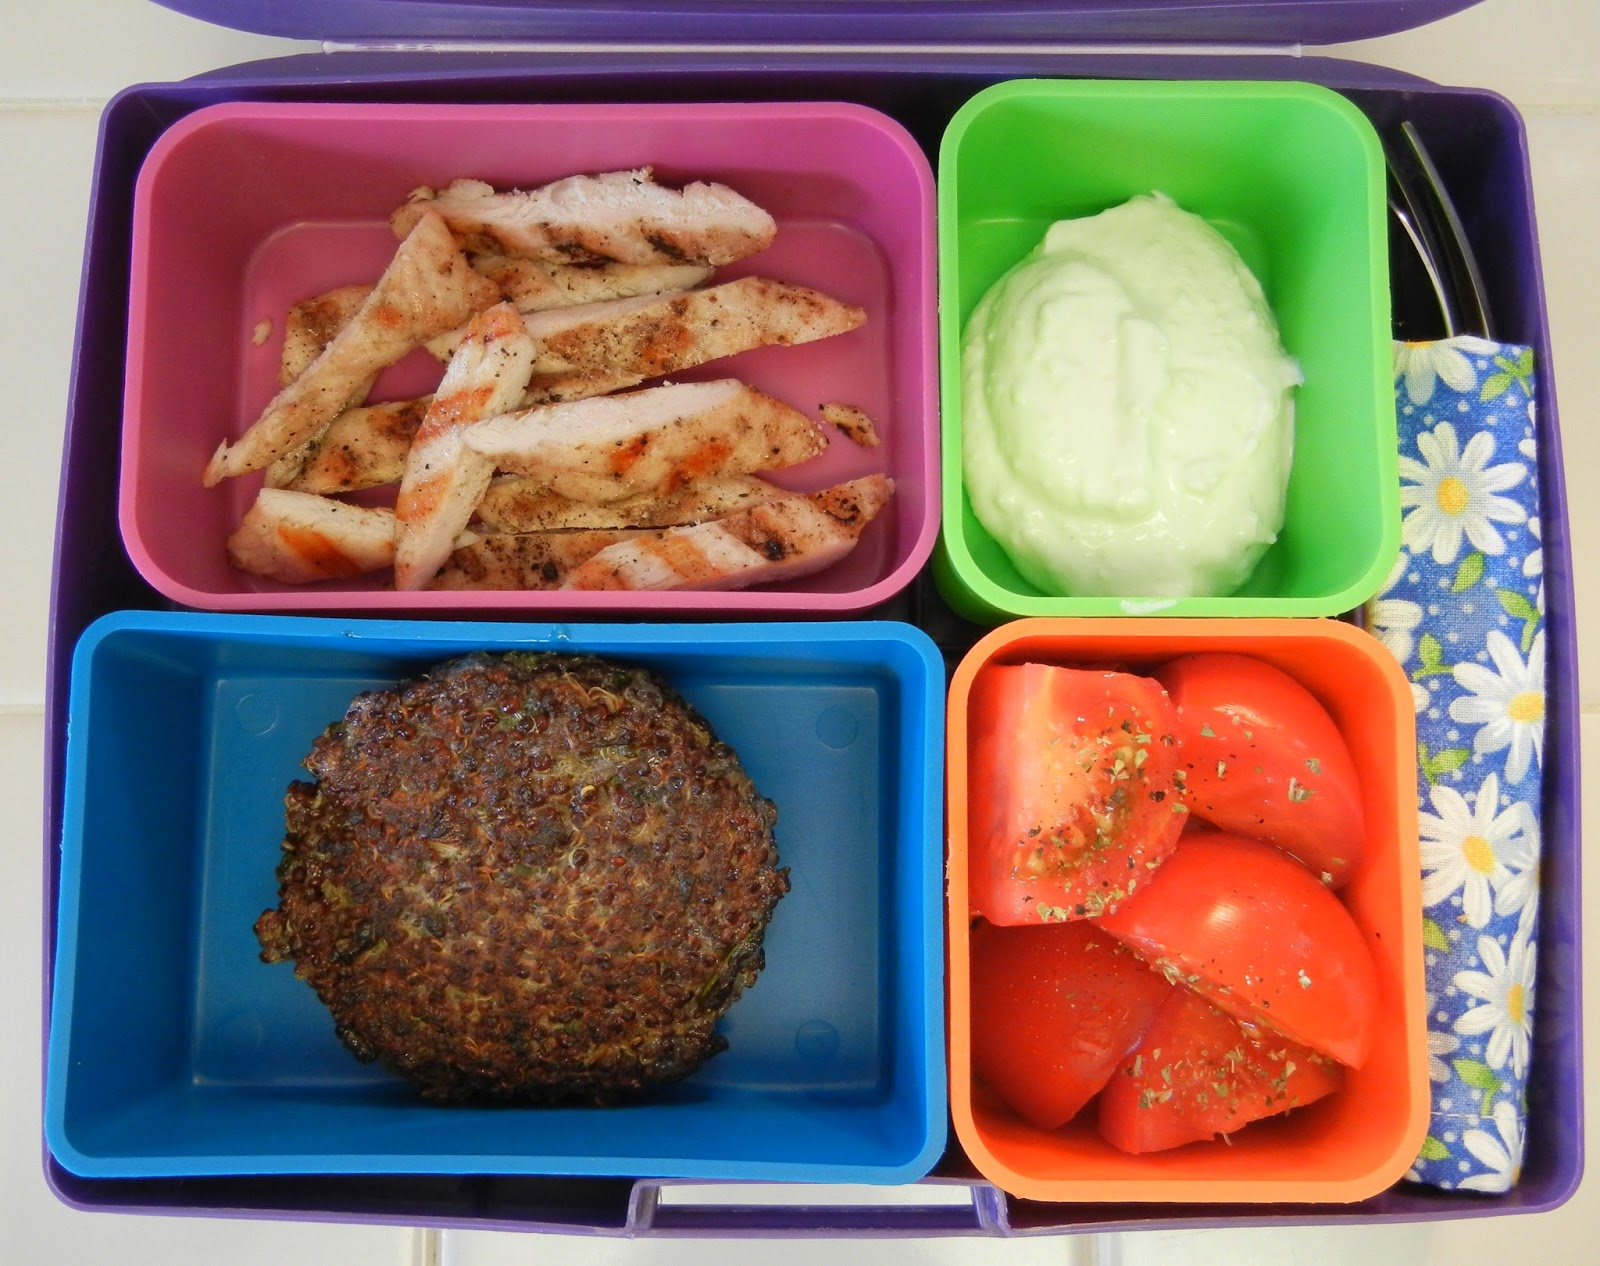 Quinoa+Patty+and+Chicken+Bento+Box Weight Loss Recipes Post Weight Loss Surgery Menus: A day in my pouch